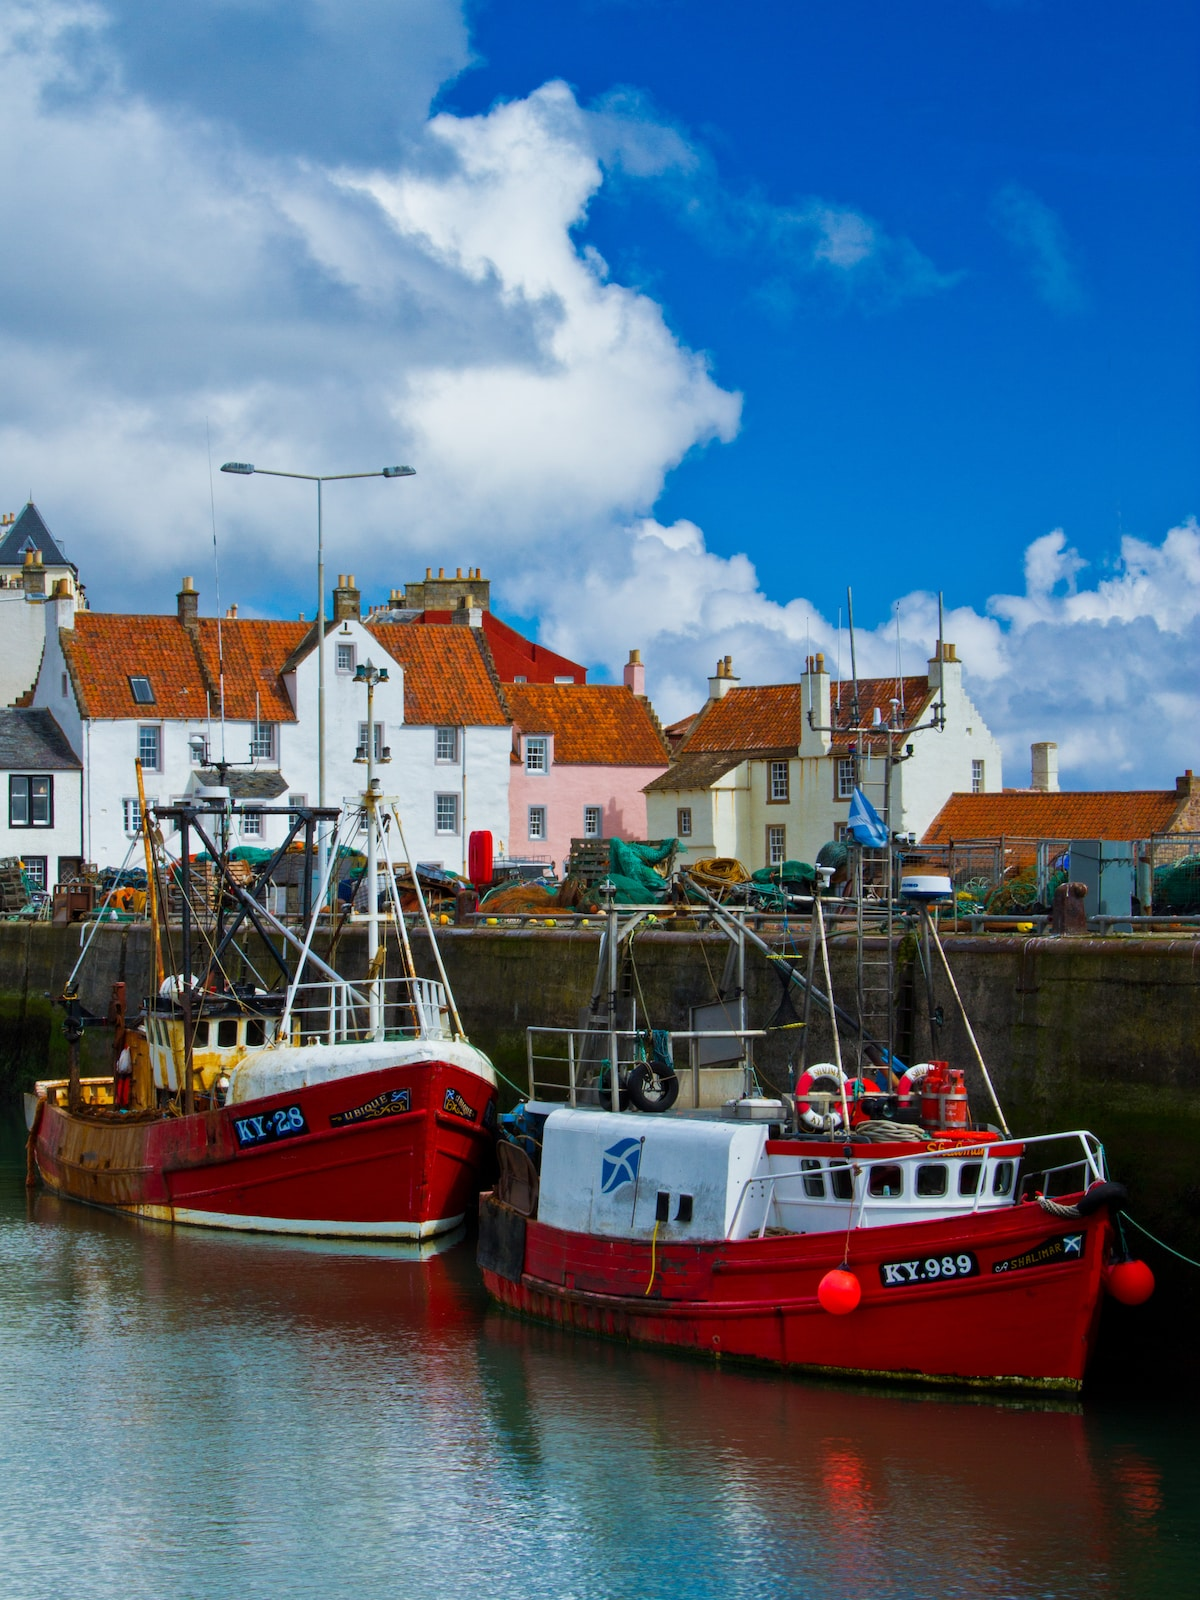 Gillian from Pittenweem